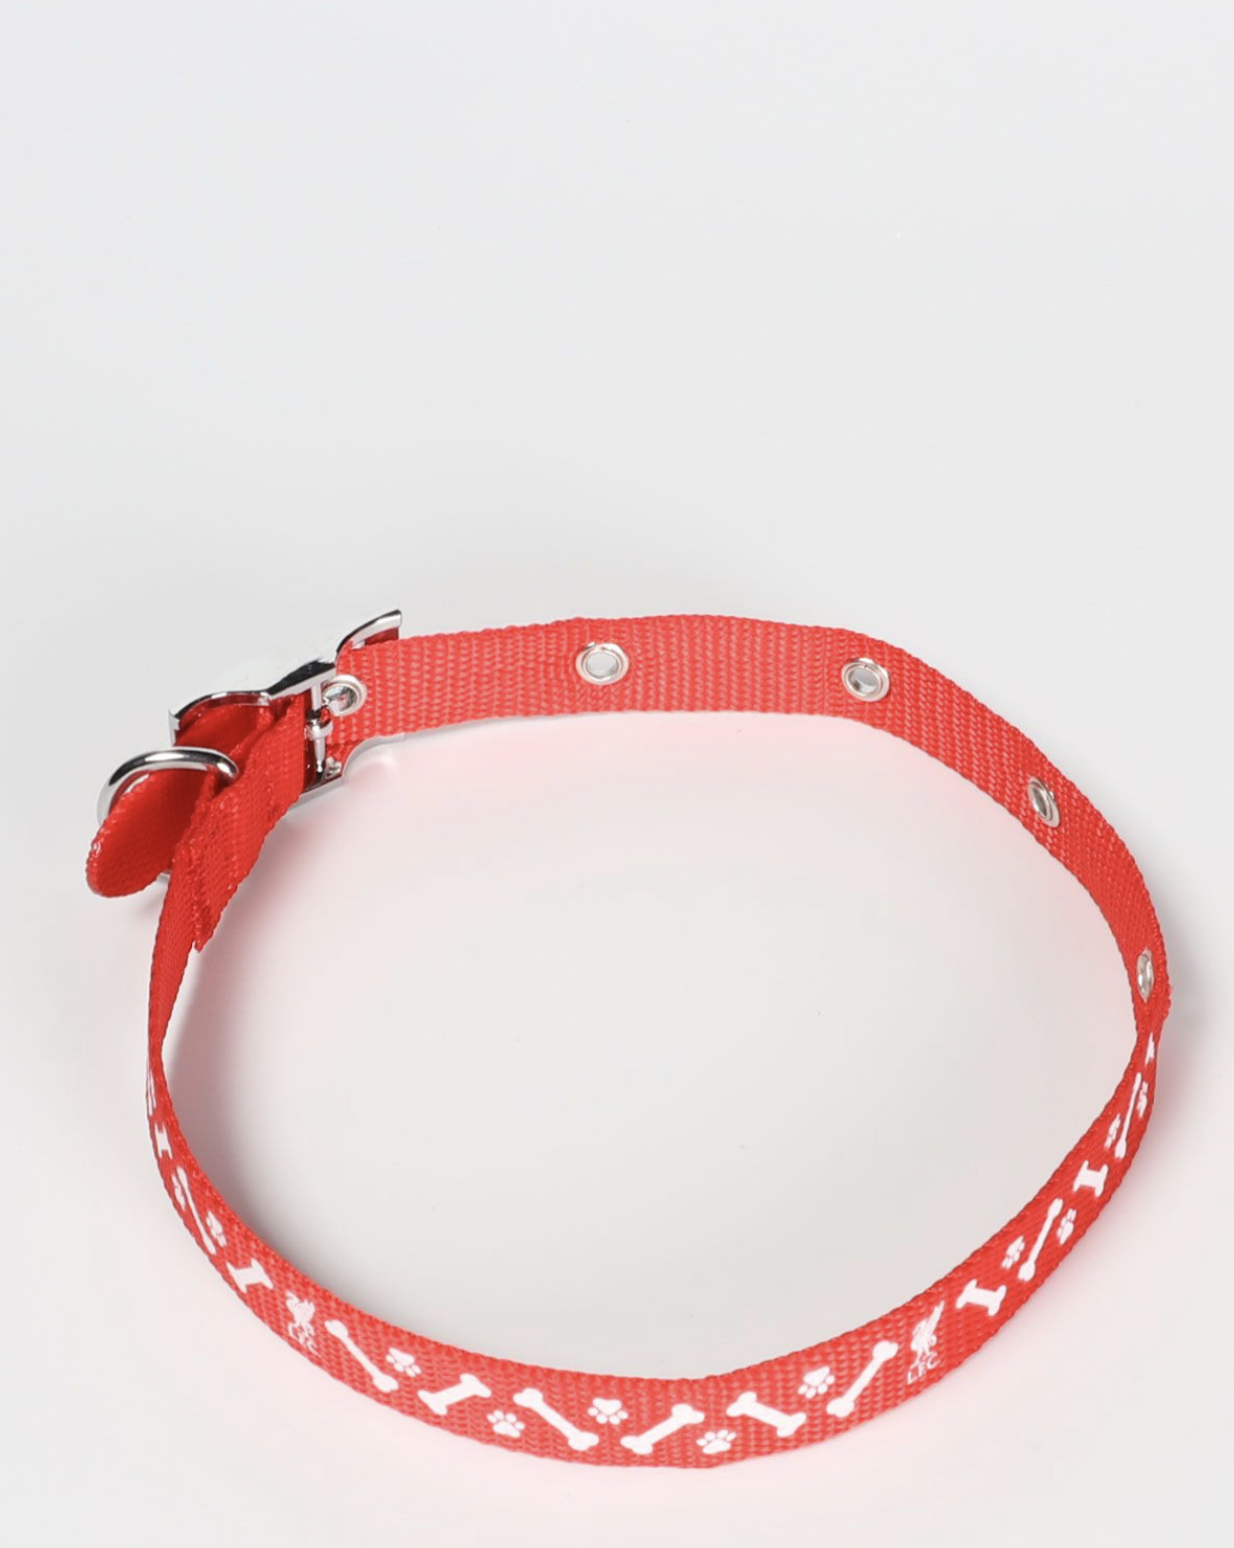 Liverpool FC Small Dog Collar - Anfield Shop